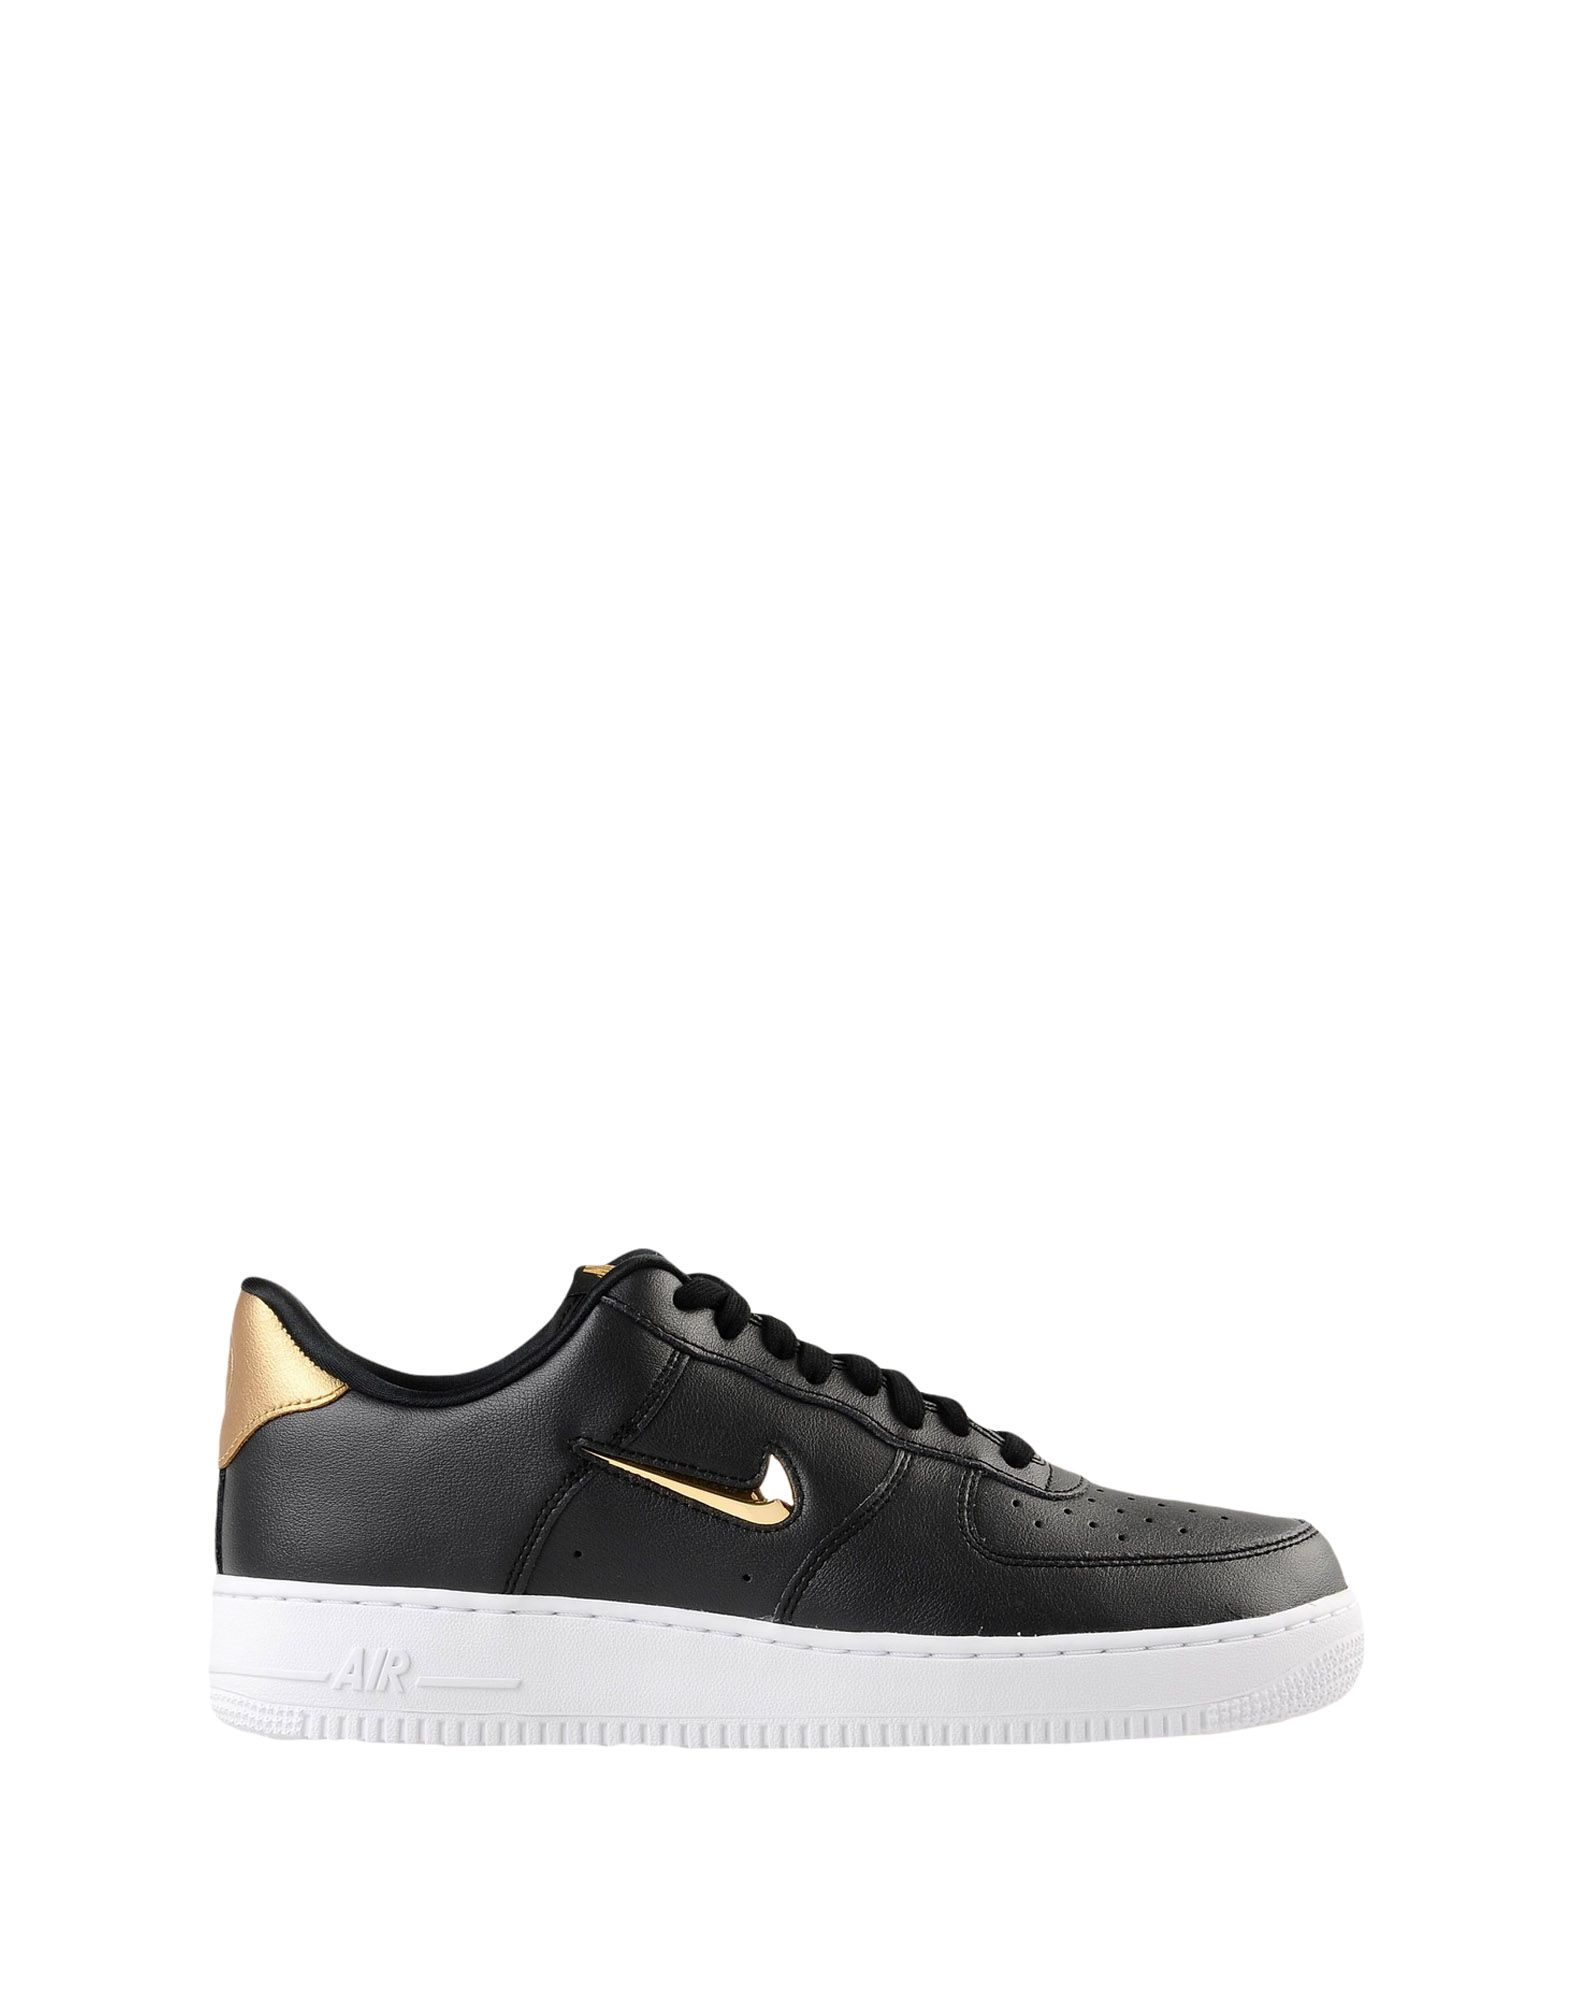 Sneakers Nike Air Force 1 '07 Lv8 Leather - Uomo - 11545231RC